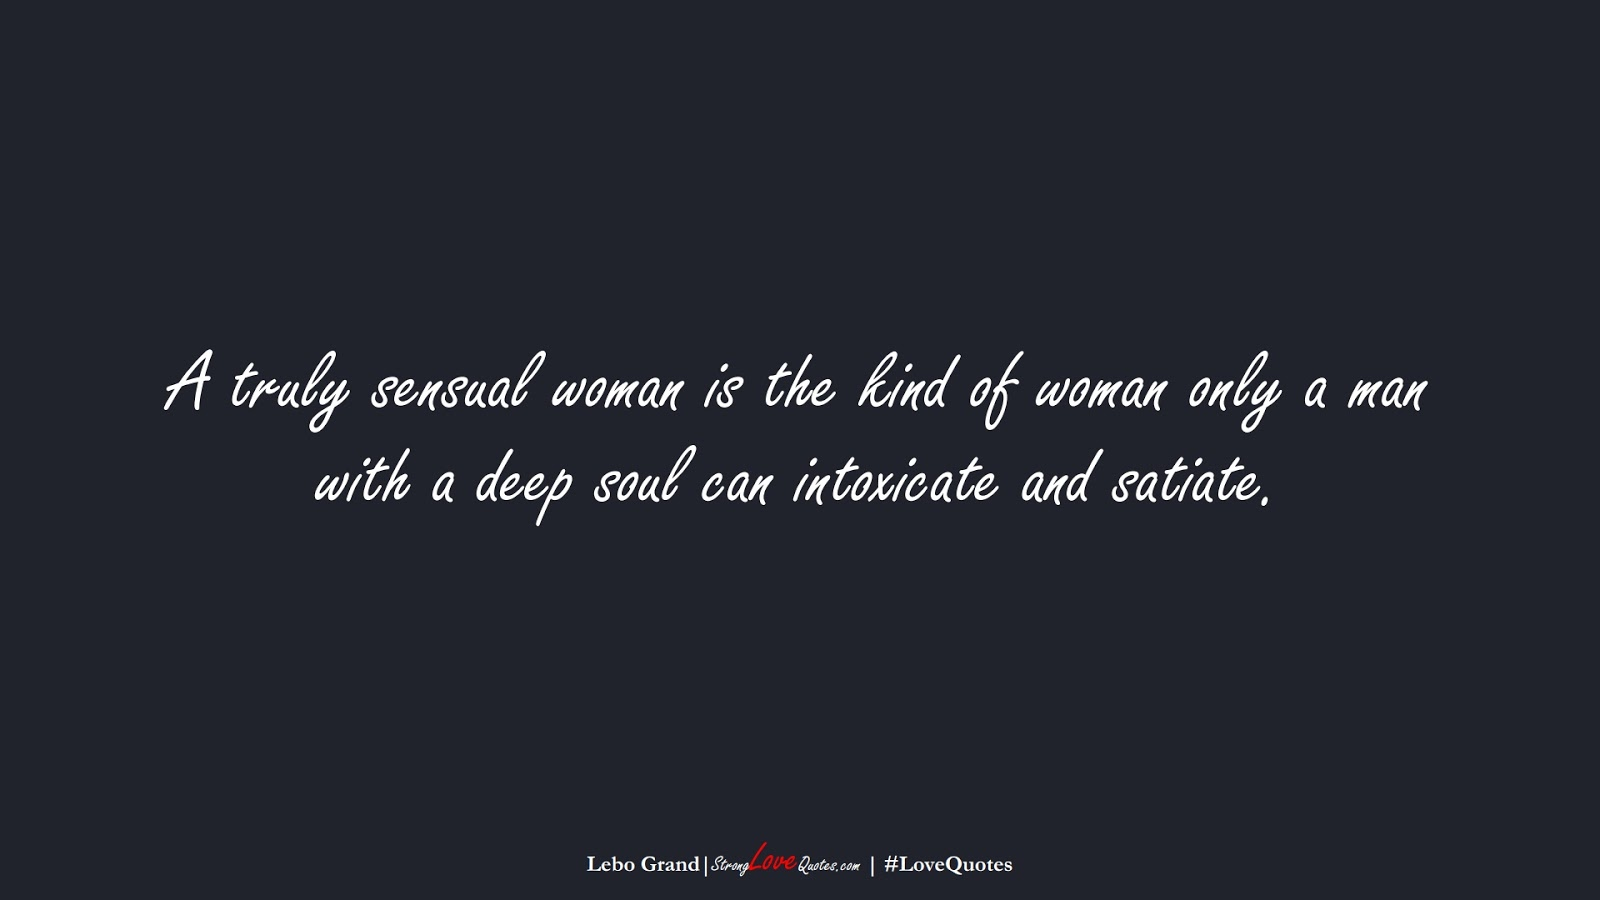 A truly sensual woman is the kind of woman only a man with a deep soul can intoxicate and satiate. (Lebo Grand);  #LoveQuotes